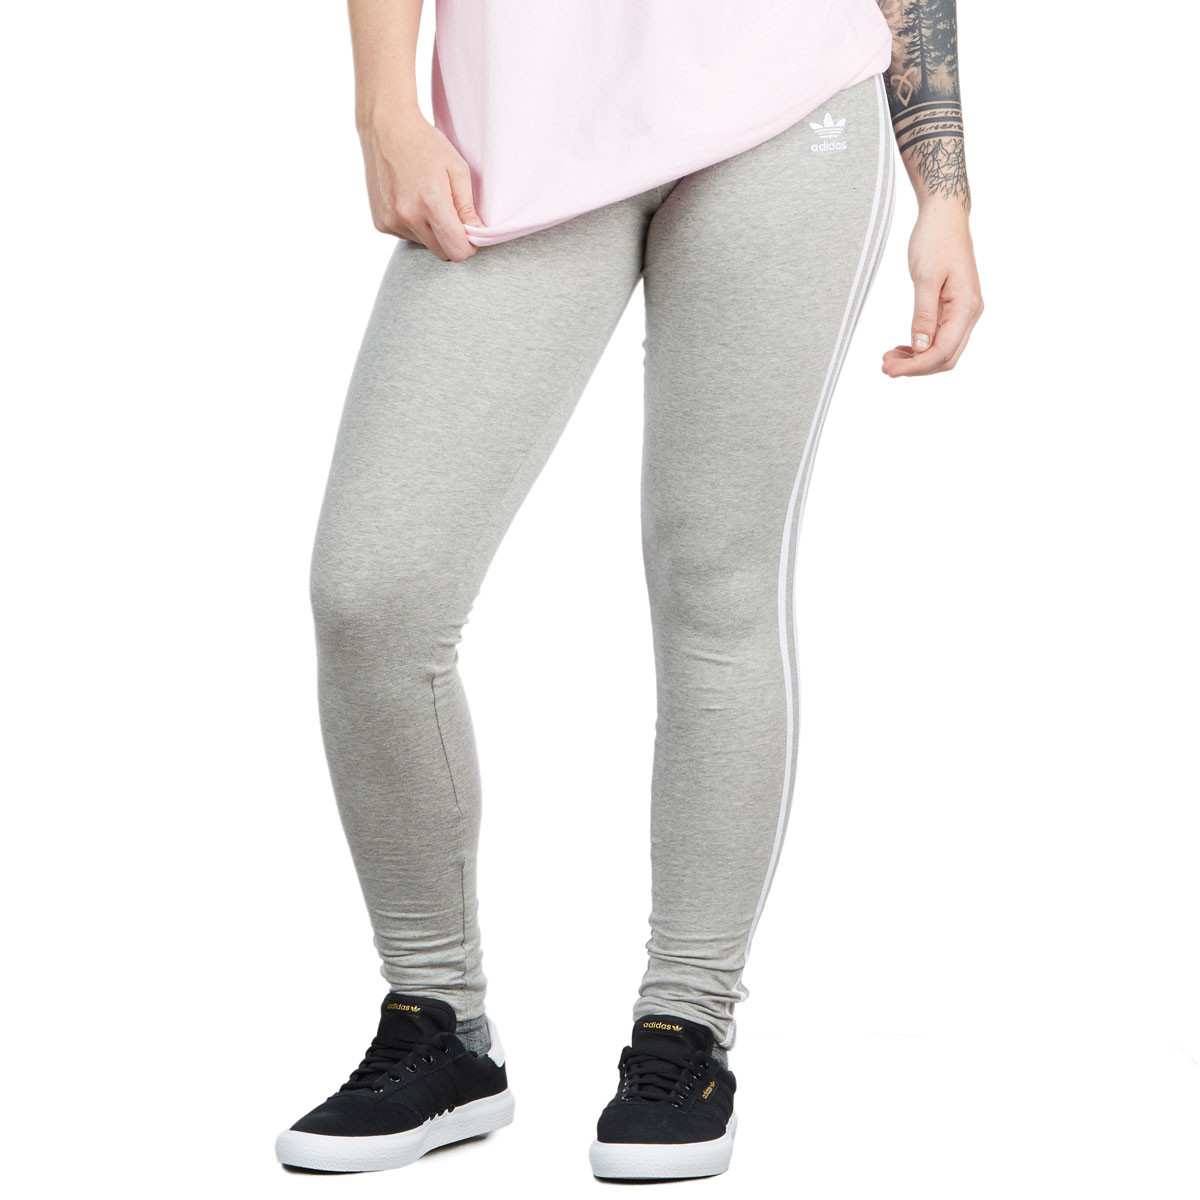 f6fe28c7ed55e Adidas Womens 3 Stripes Legging - Medium Grey Heather - LG